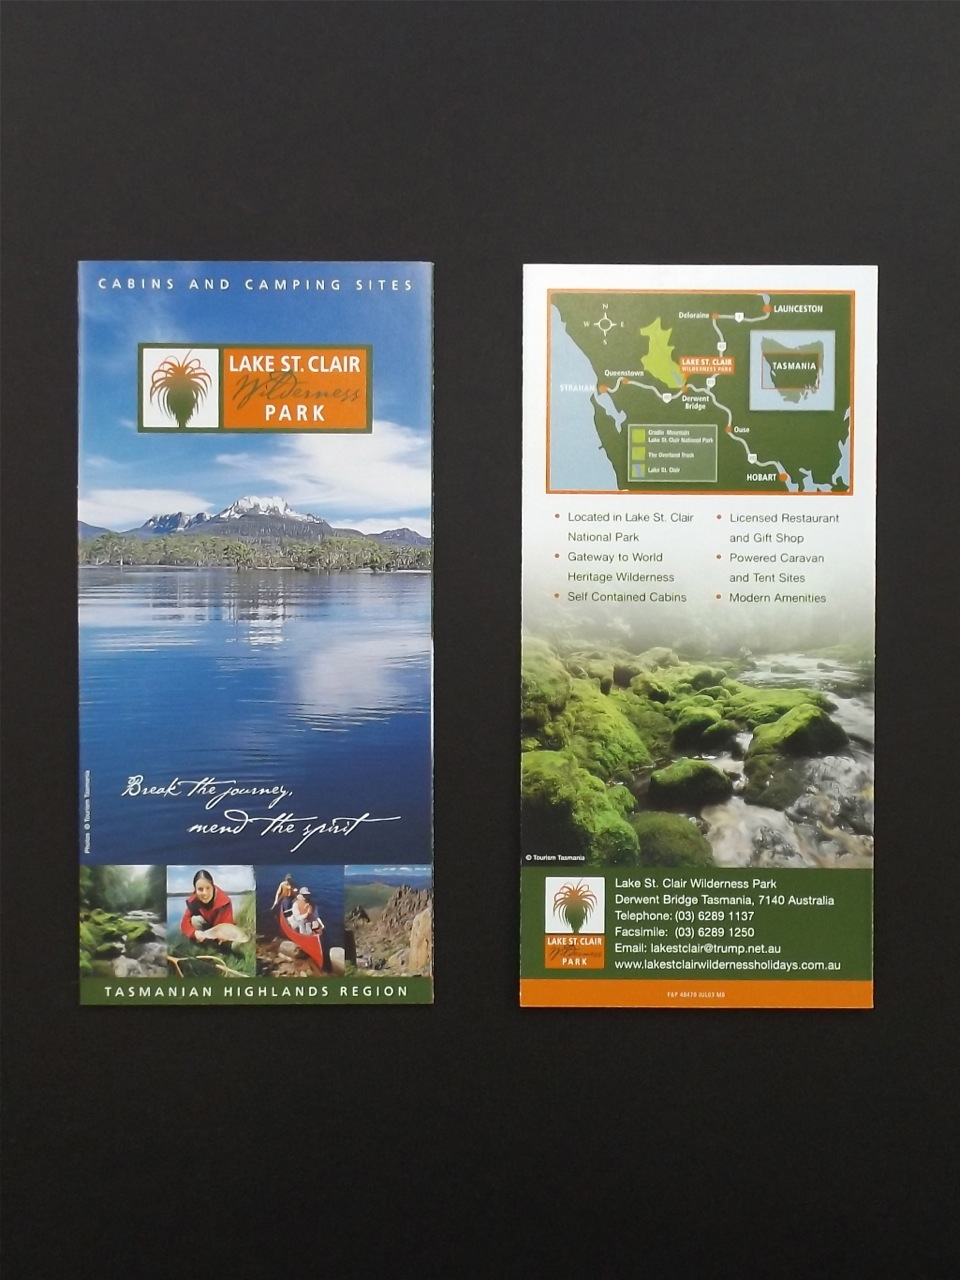 LAKE ST. CLAIR WILDERNESS PARK - Brand design, business collaterals, map illustration and brochure design.